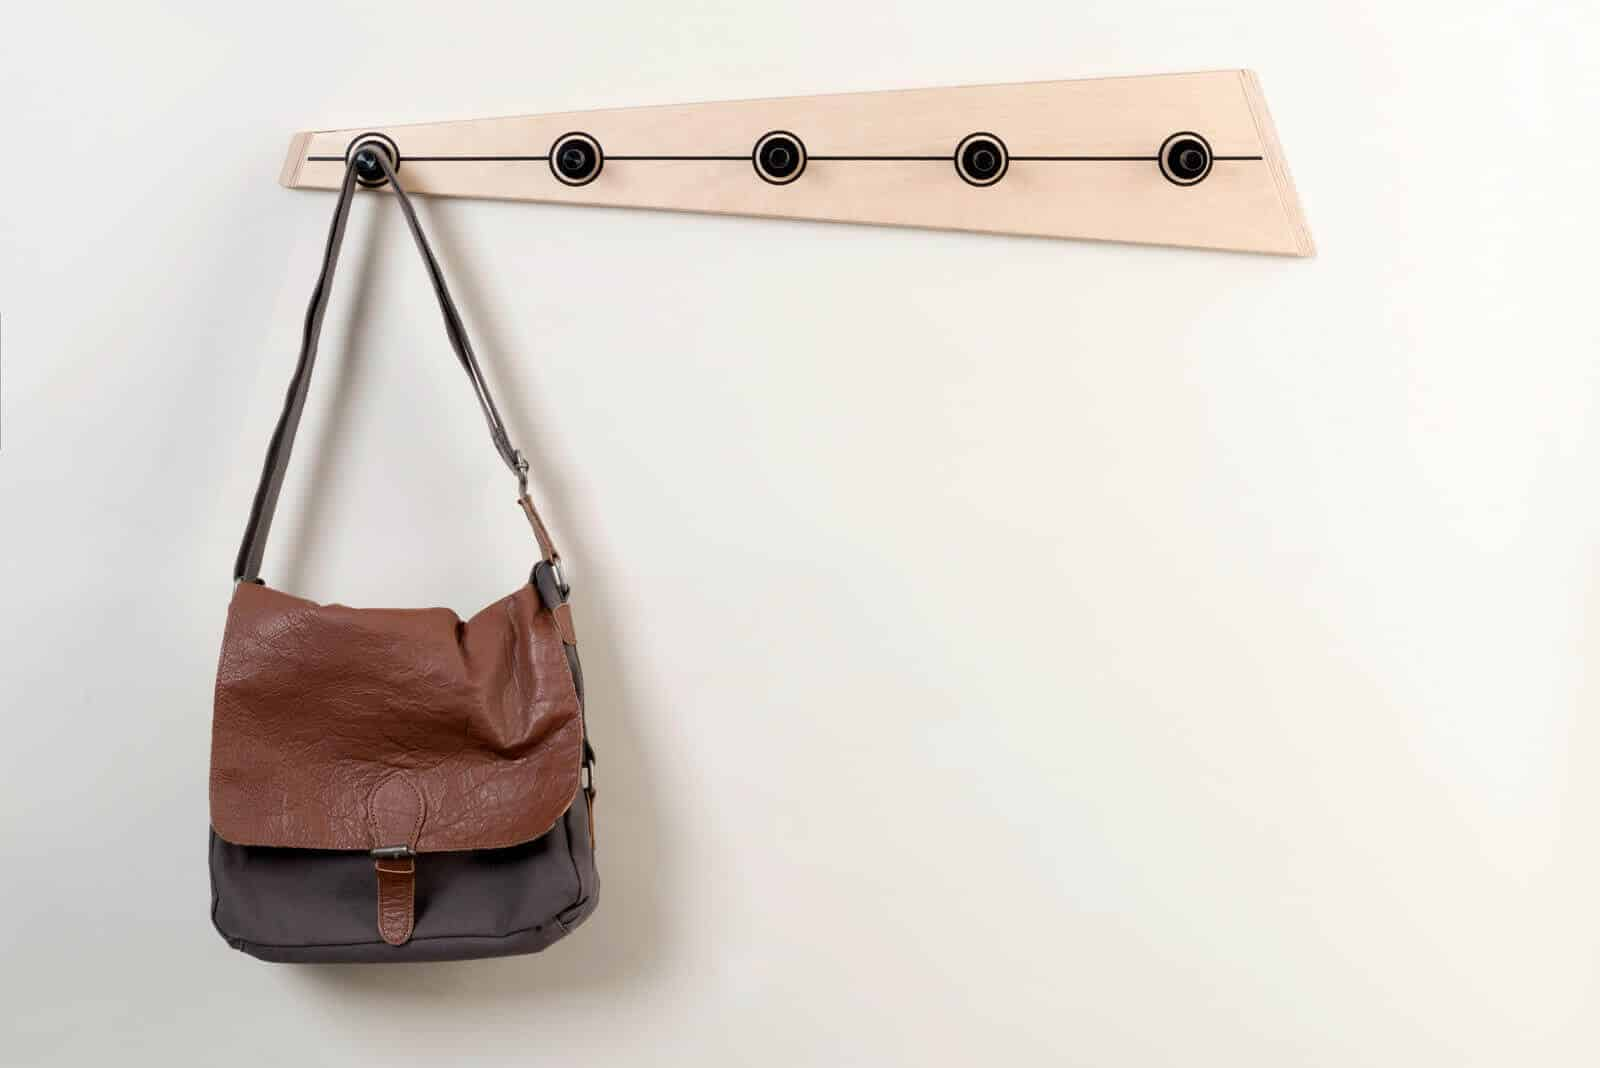 DIY handbag and Coat Rack